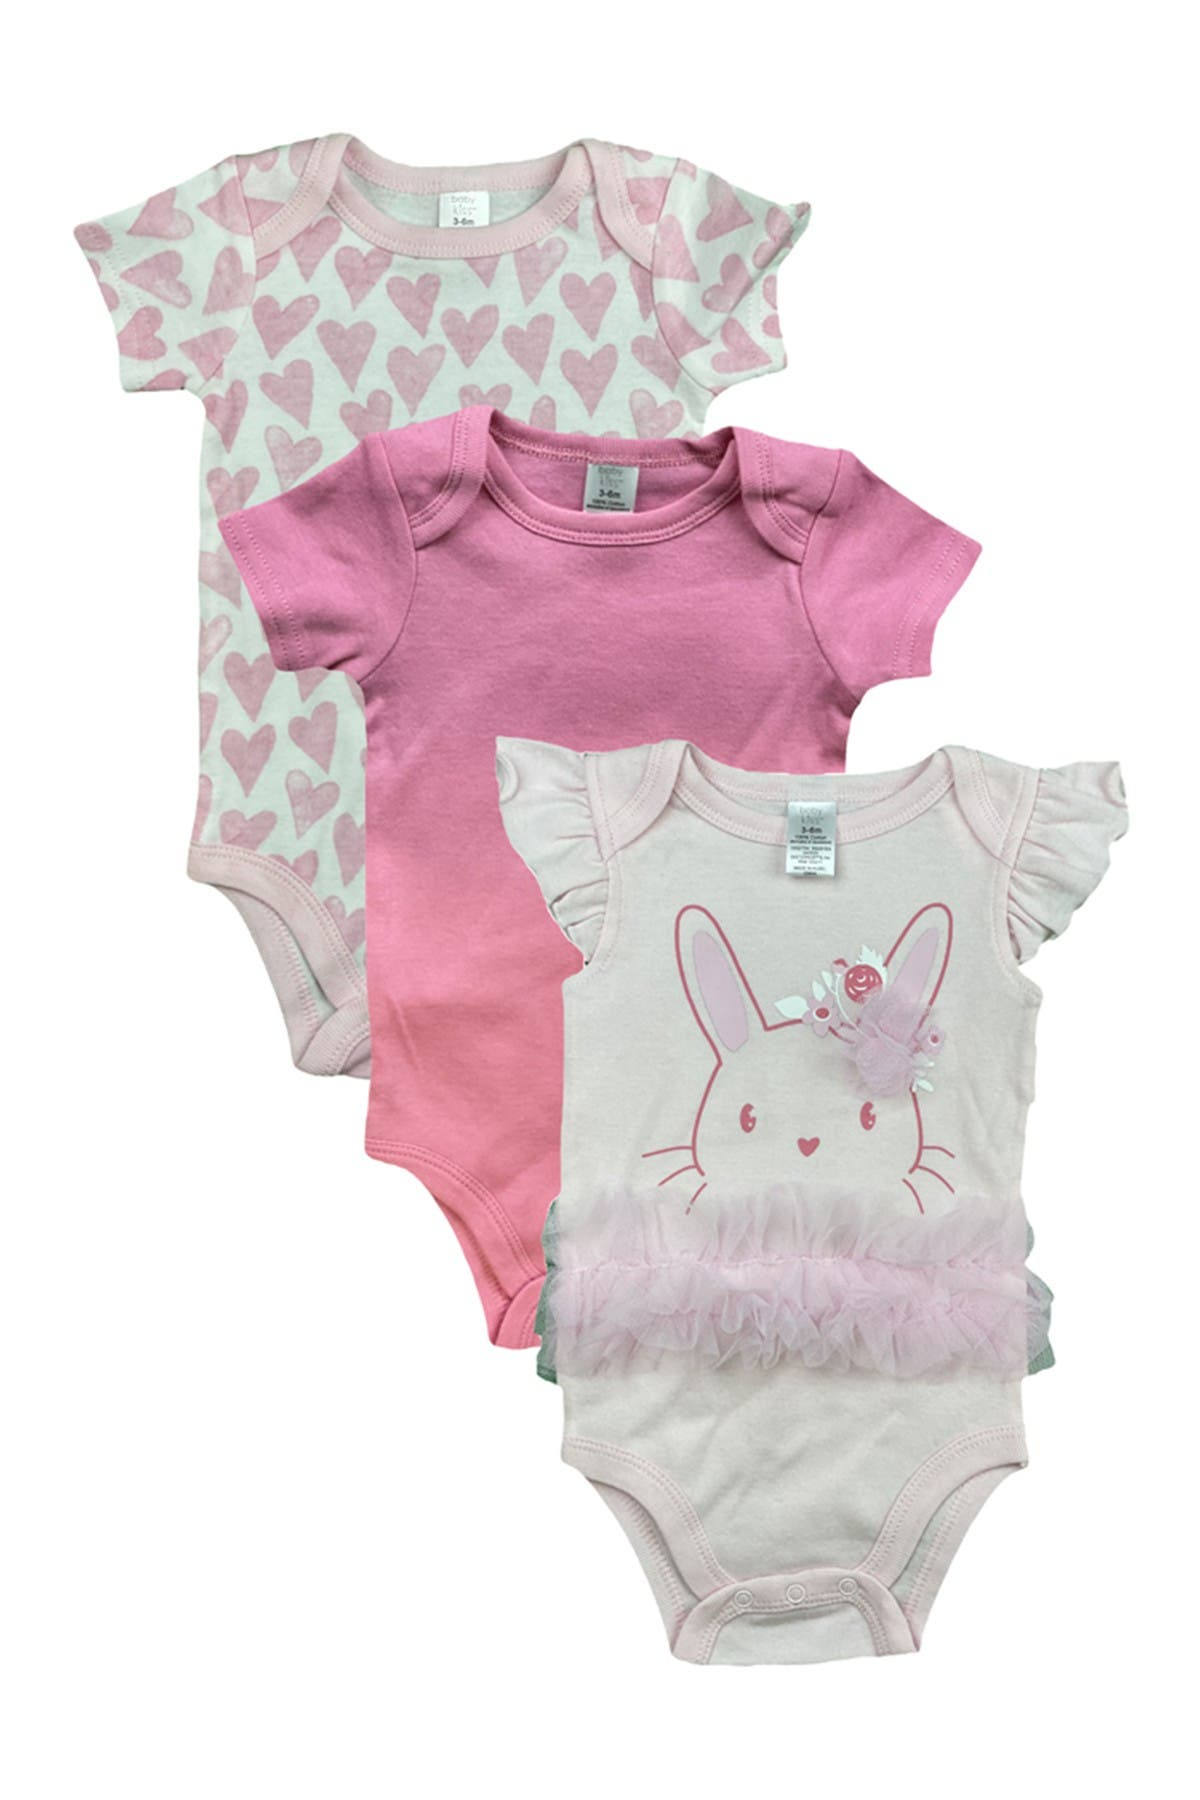 Image of Modern Baby Novelty Assorted Bodysuit - Pack of 3